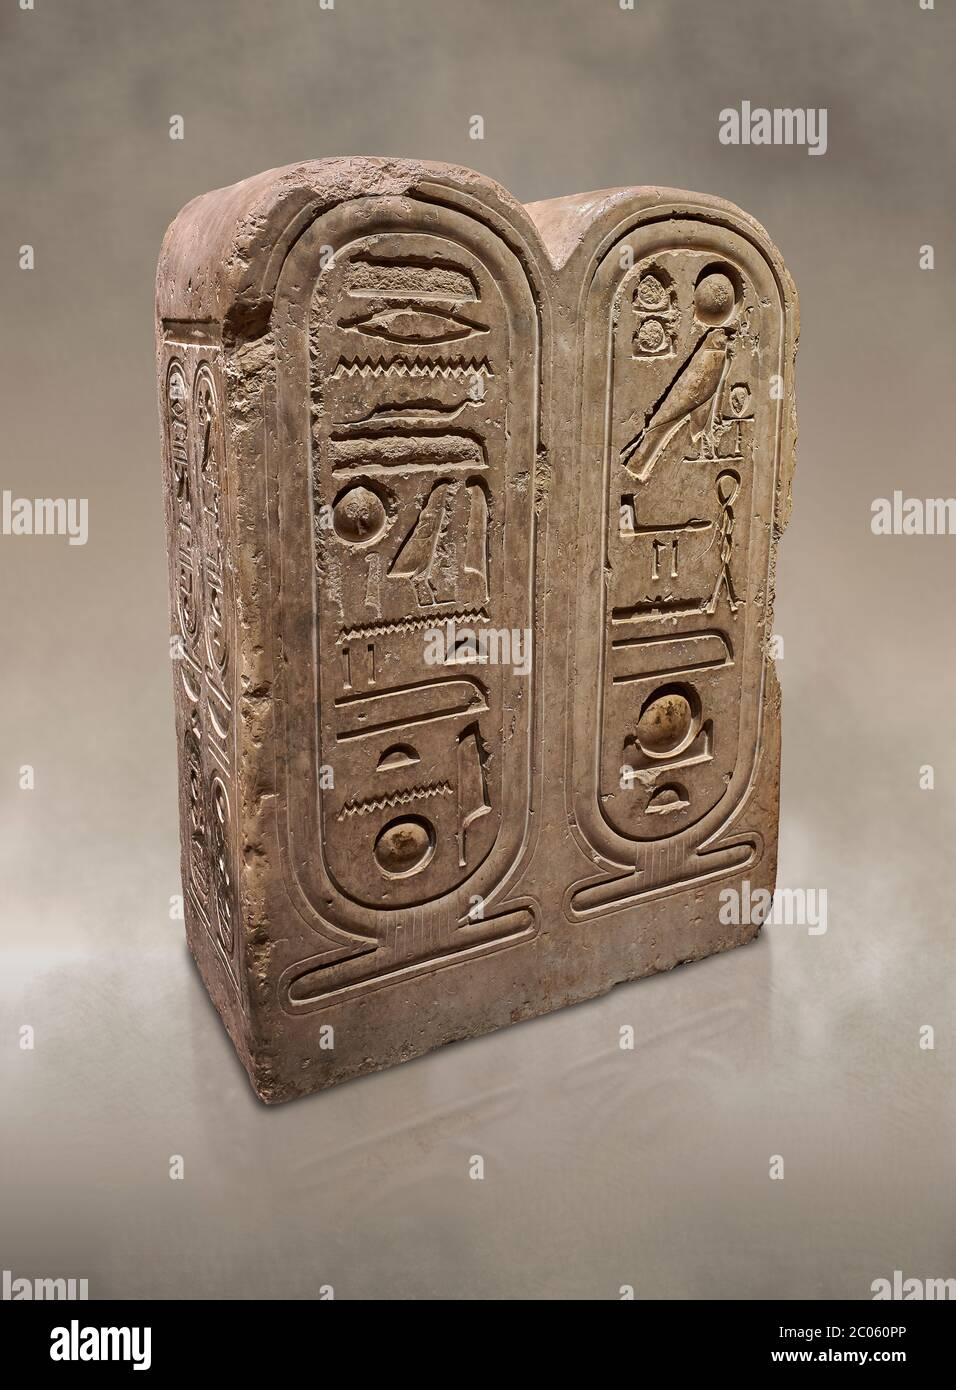 Ancient Egyptian architectonic element of the temple of Aten, Karnak, limestone, New Kingdom 18th Dynasty (1353-1336 BC). Egyptian Museum, Turin.  Thi Stock Photo